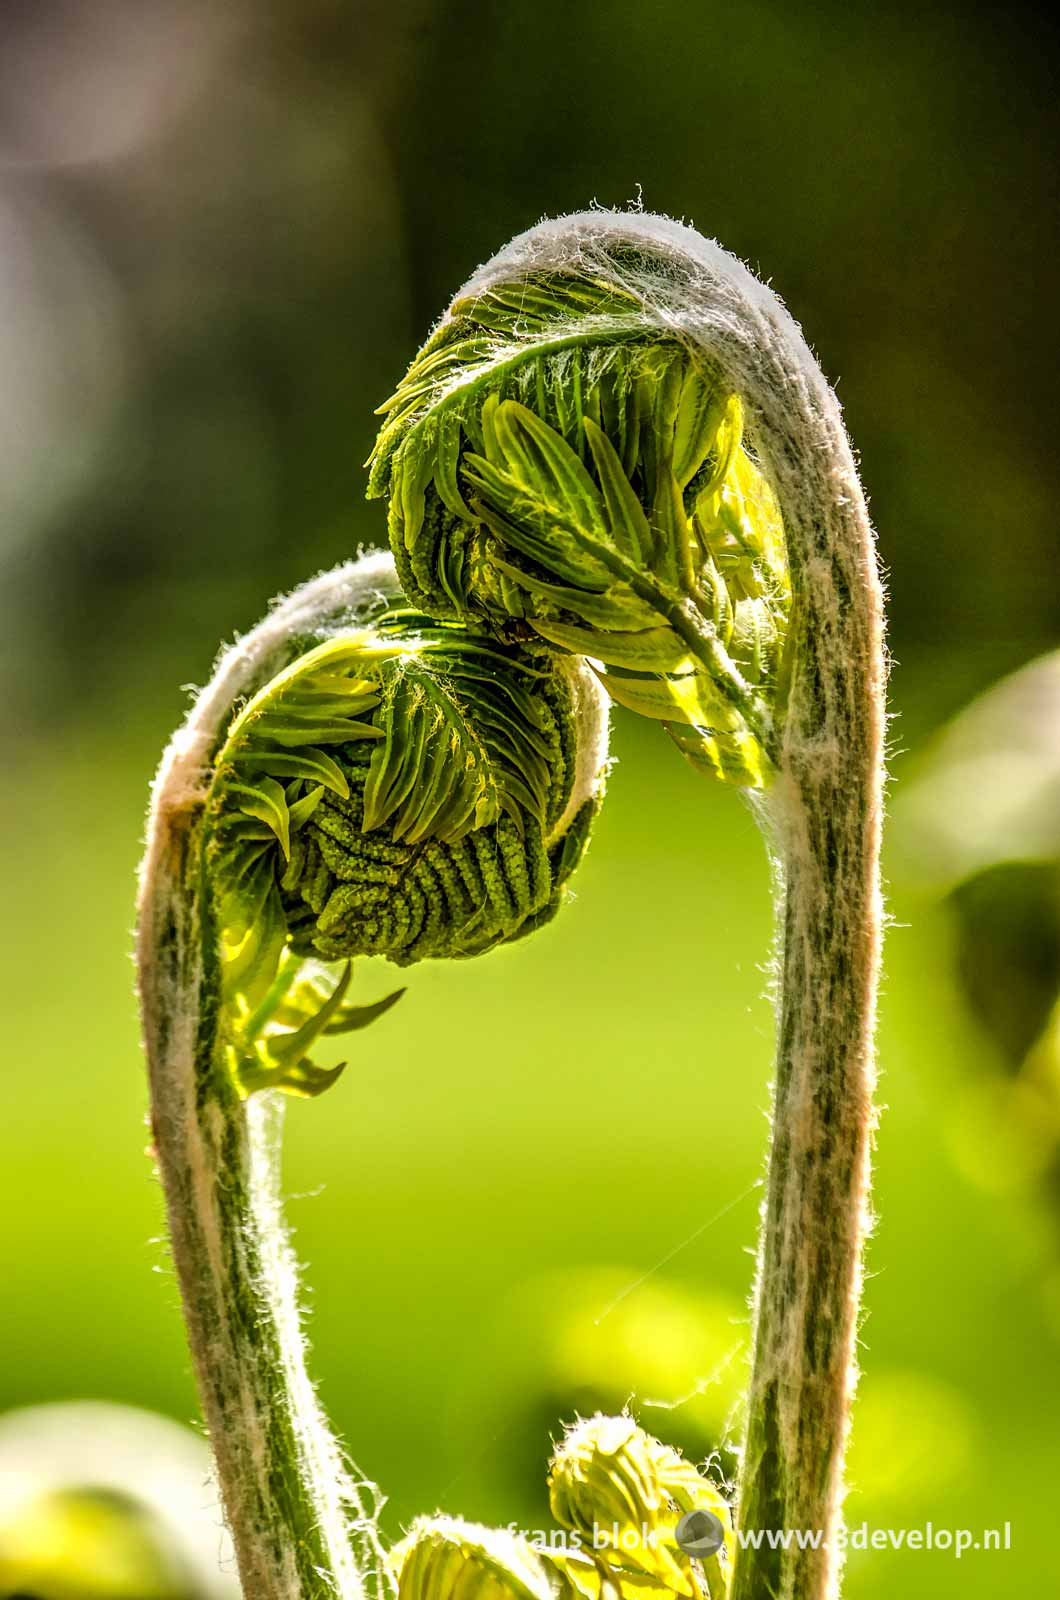 Two young ferns in springtime, caressing each other like a loving couple